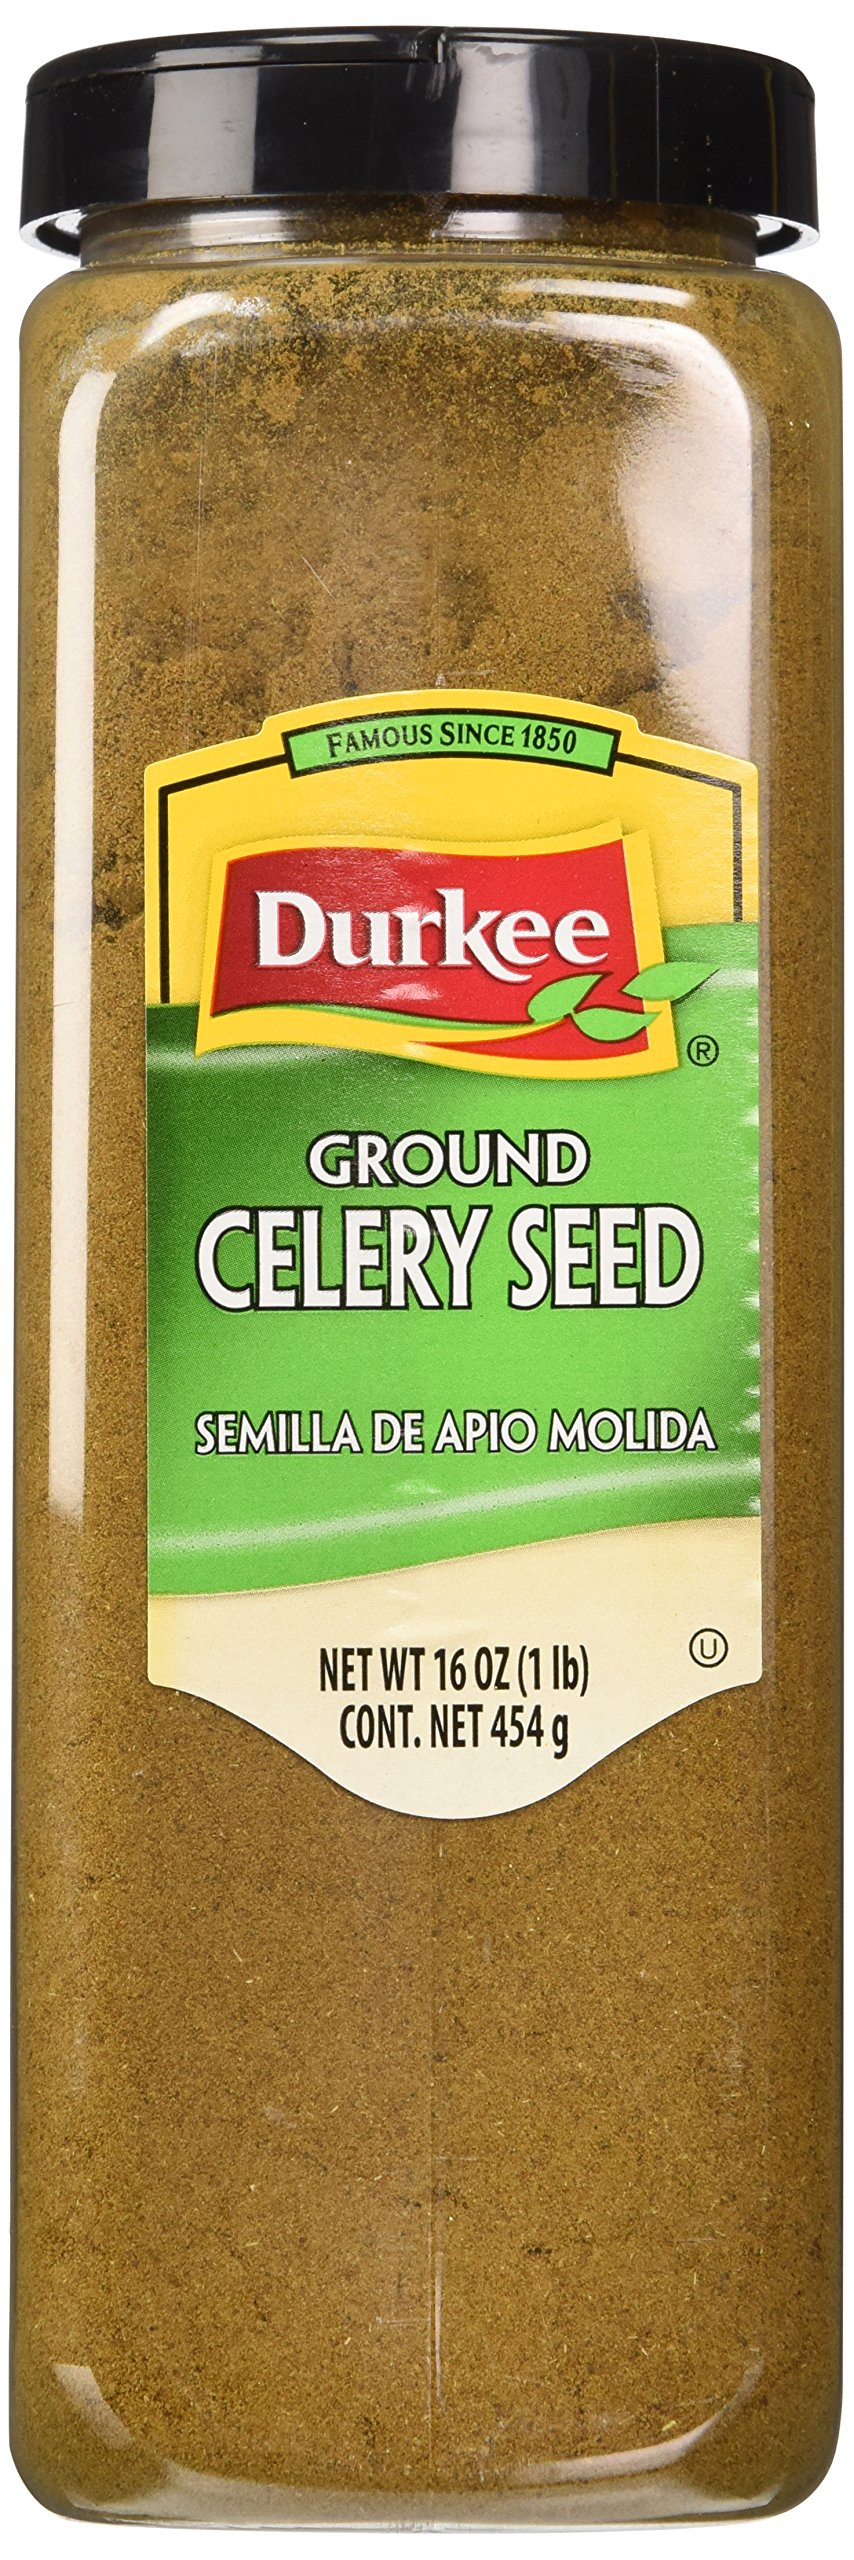 Durkee Celery Seed Ground, 16-Ounce Containers (Pack of 2)